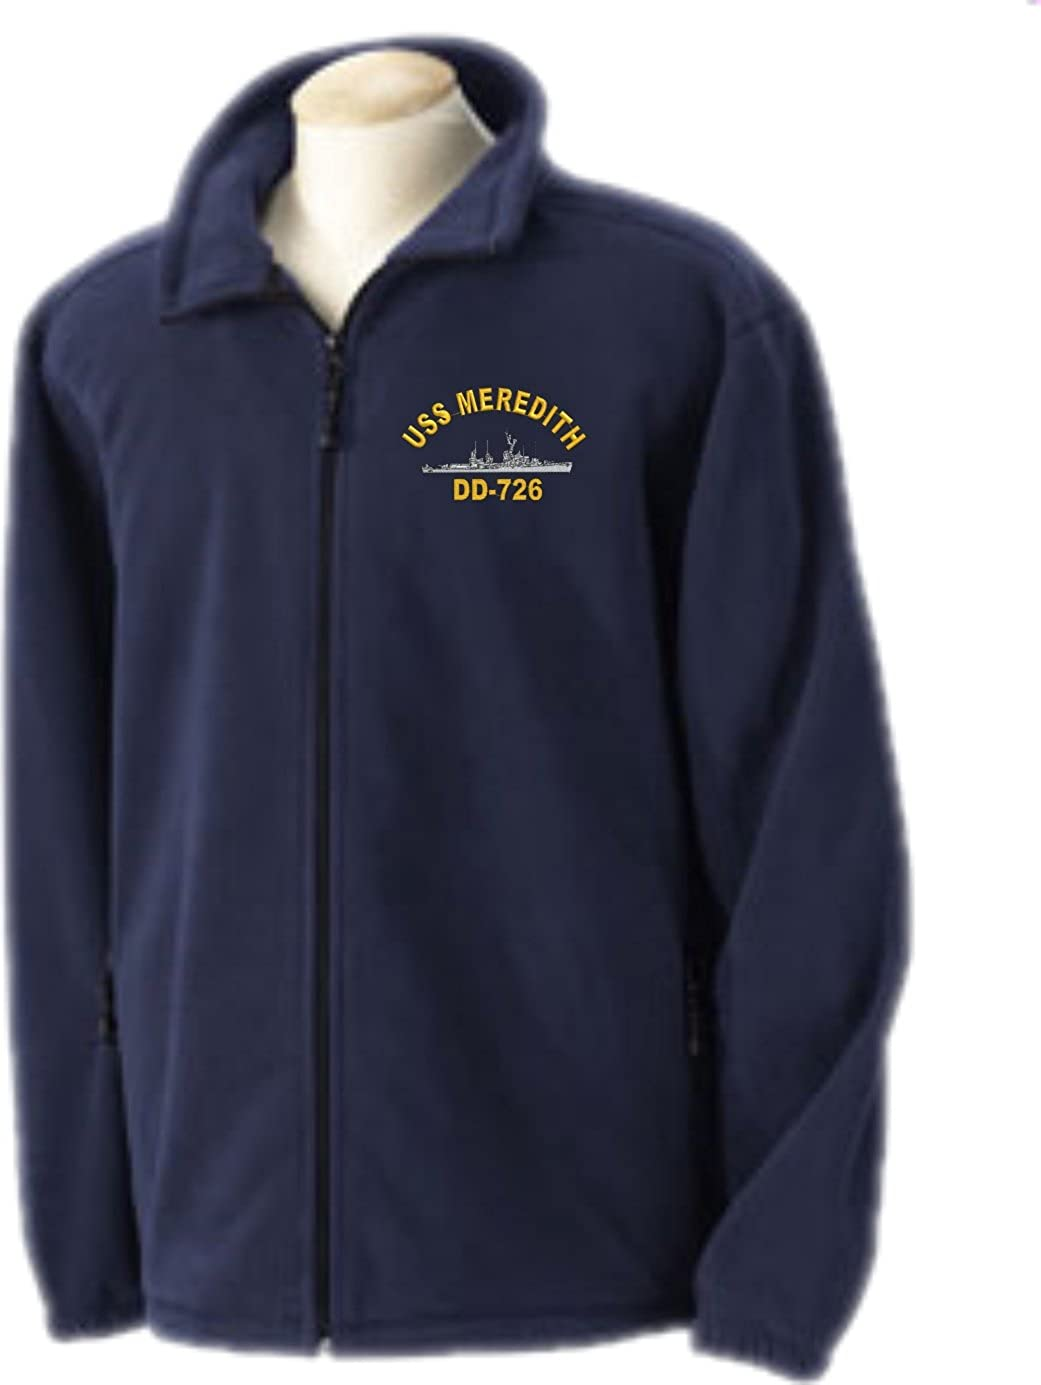 Custom Military Apparel USS Meredith DD-726 Embroidered Fleece Jacket Sizes Small-4X